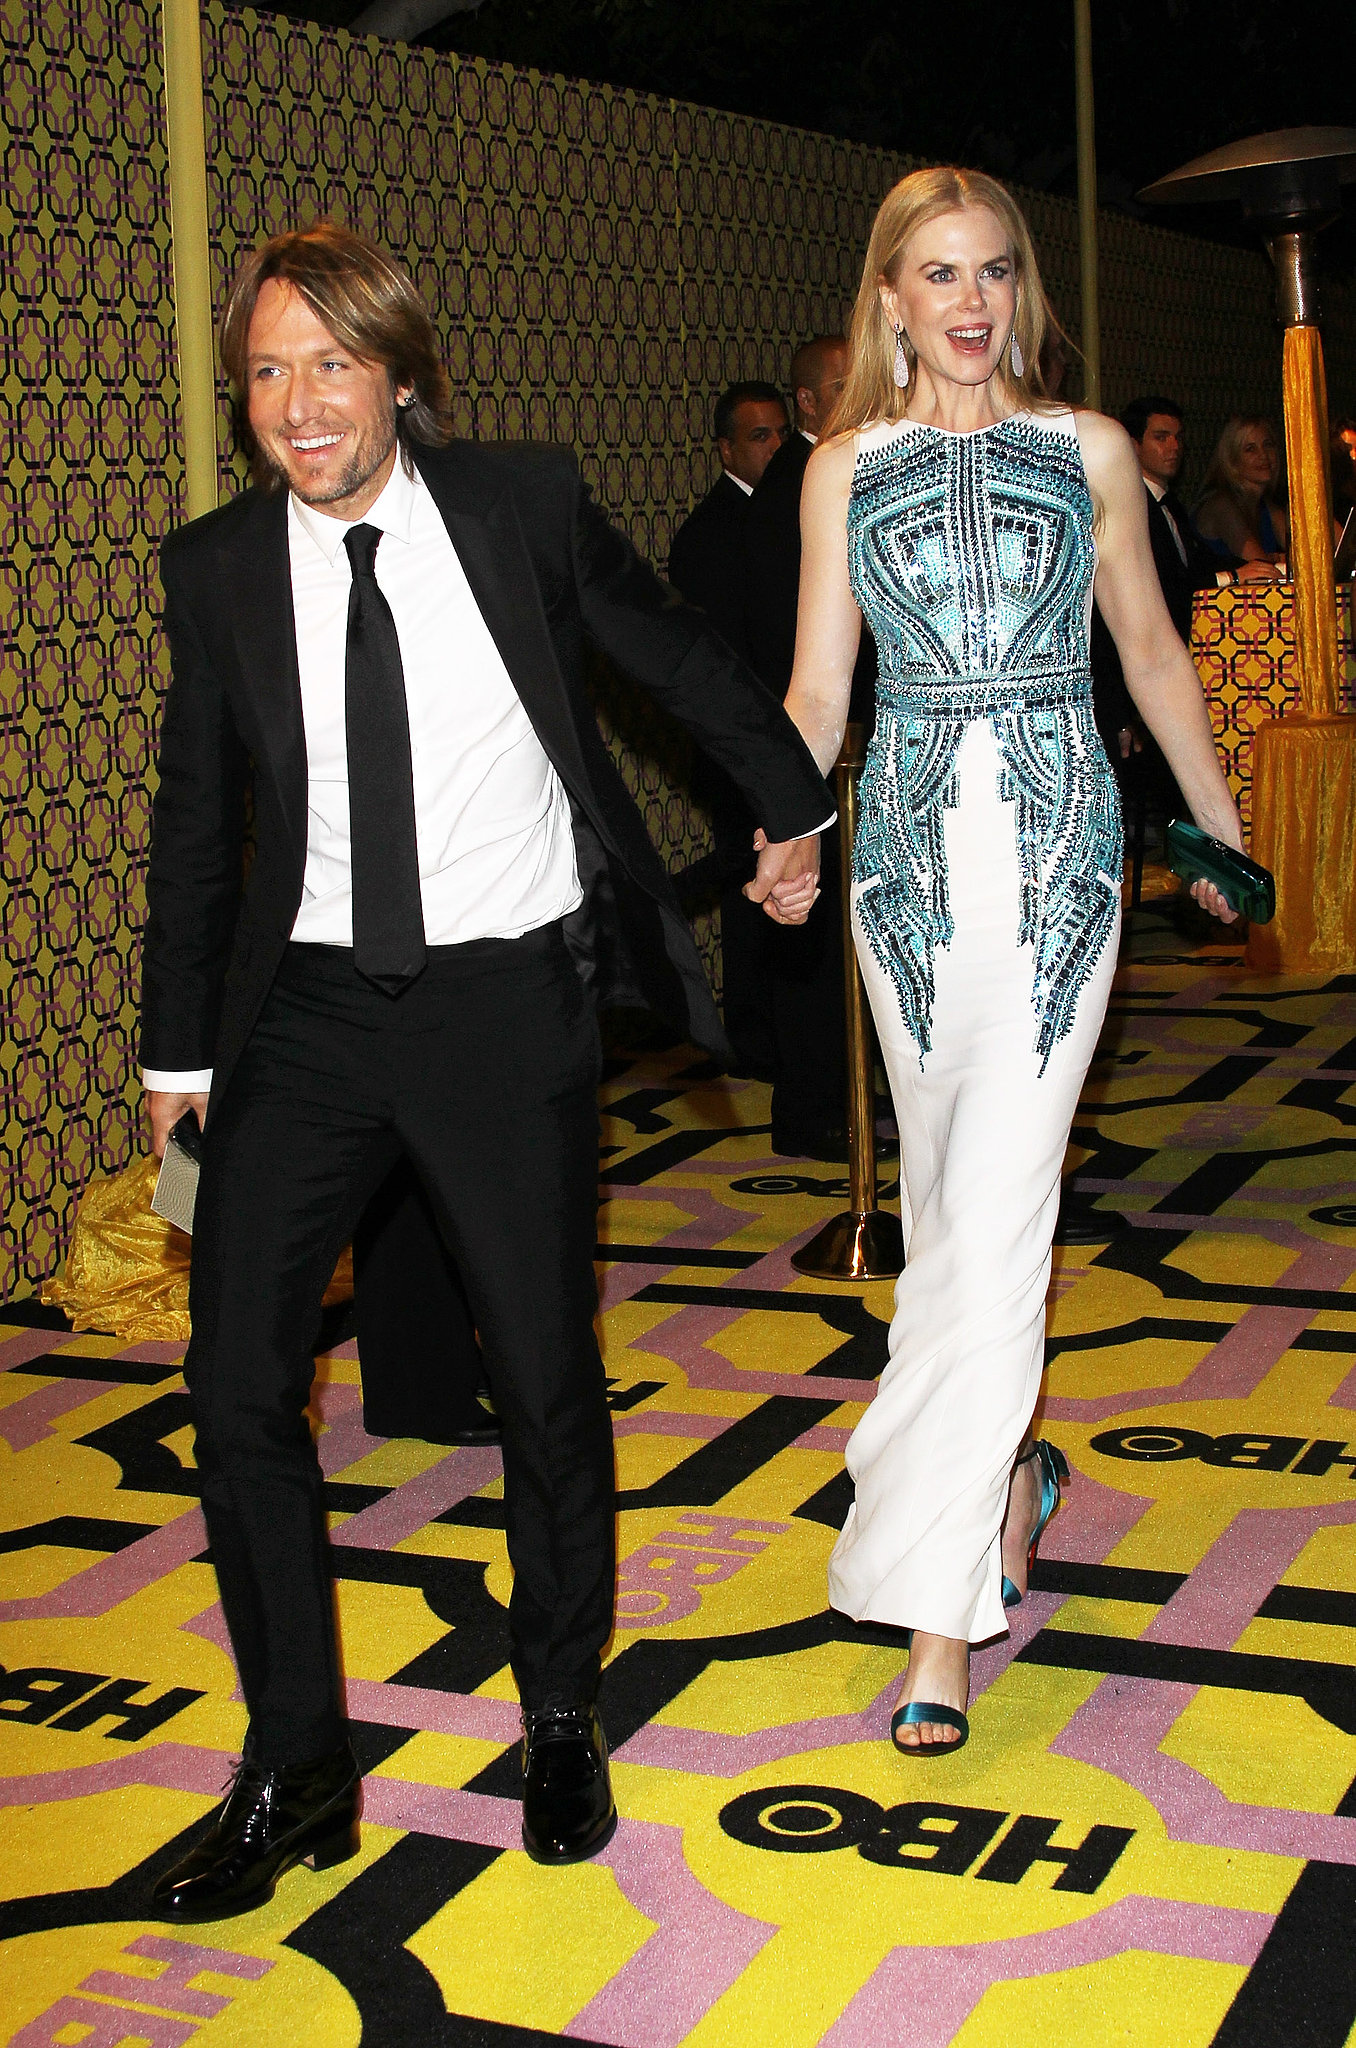 Nicole Kidman and her husband, Keith Urban, held hands as they made their way to the Emmy Awards reception after the 2012 show.